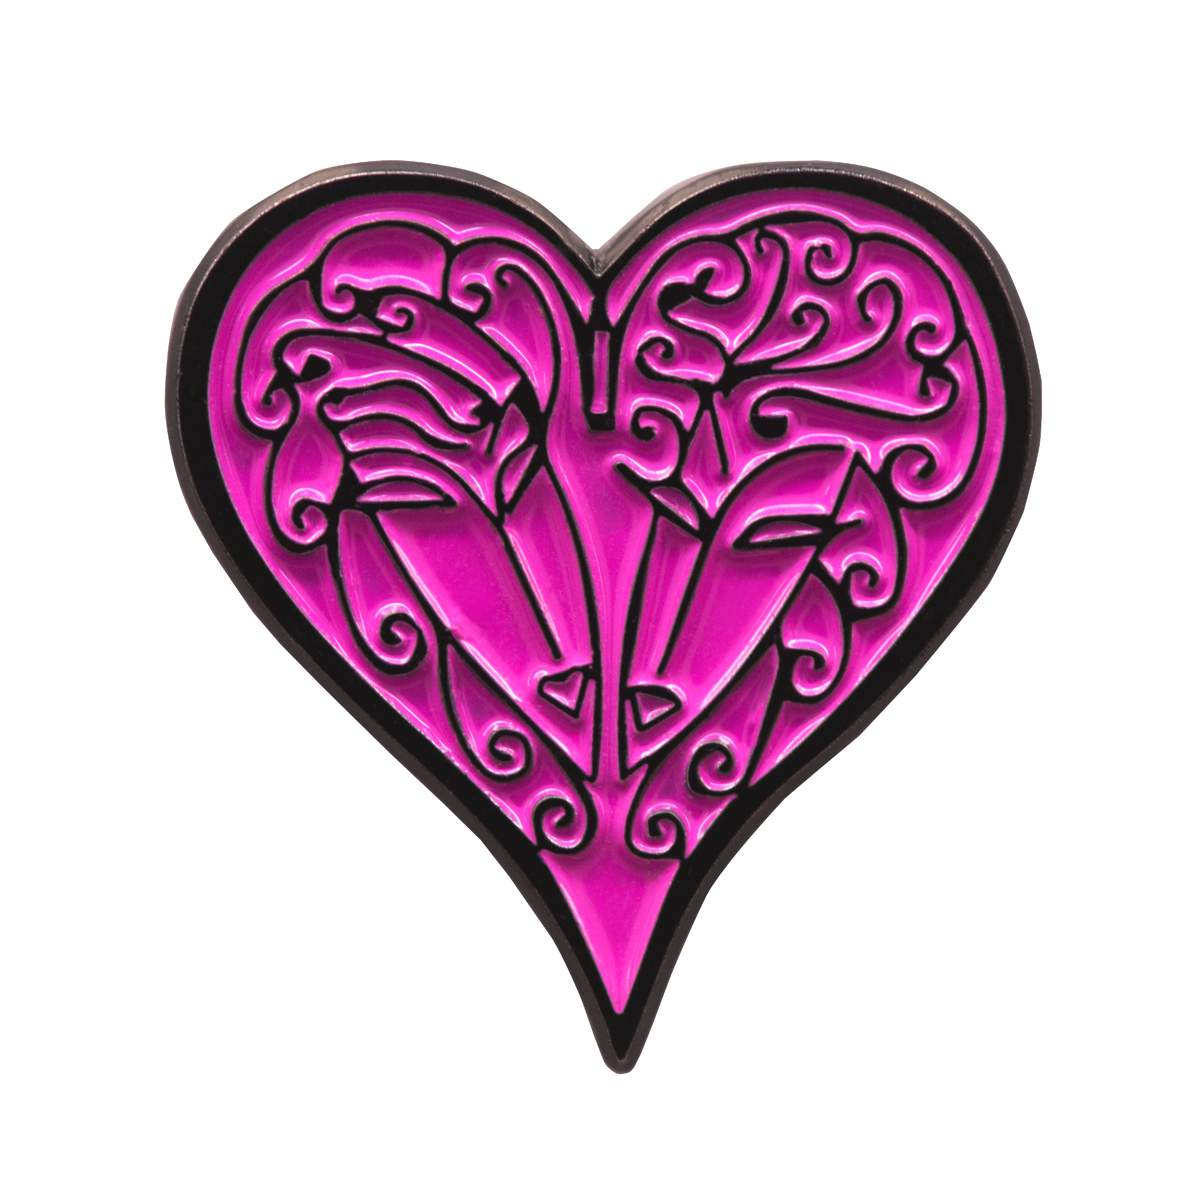 Pink Heart Pin Badge Designed by Dame Zandra Rhodes